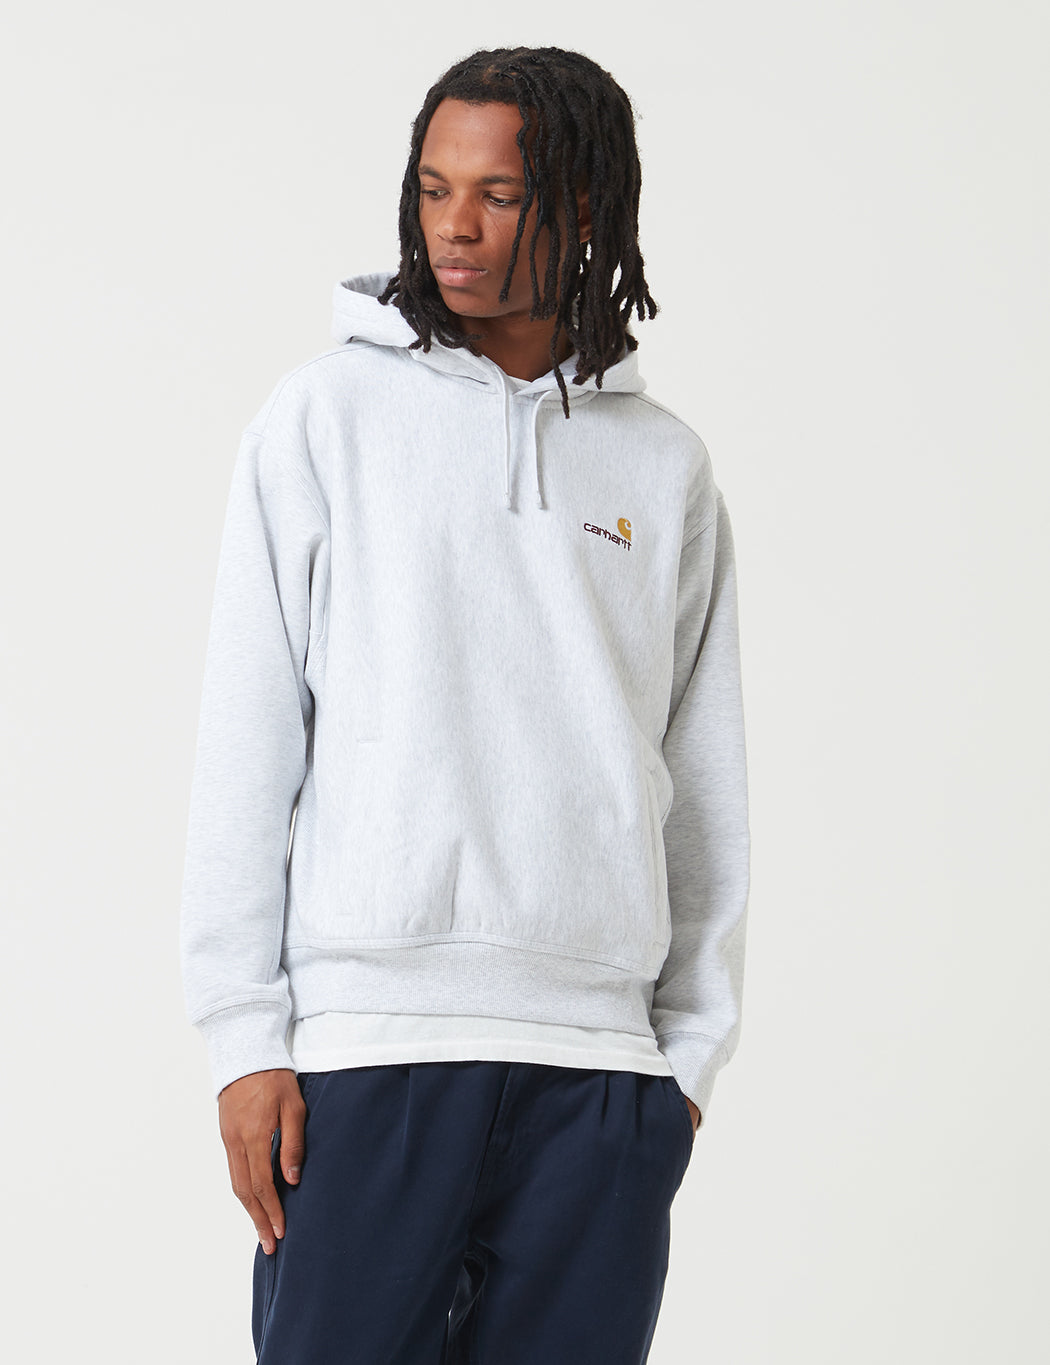 Carhartt American Script Hooded Sweat - Ash Heather  | URBAN EXCESS.